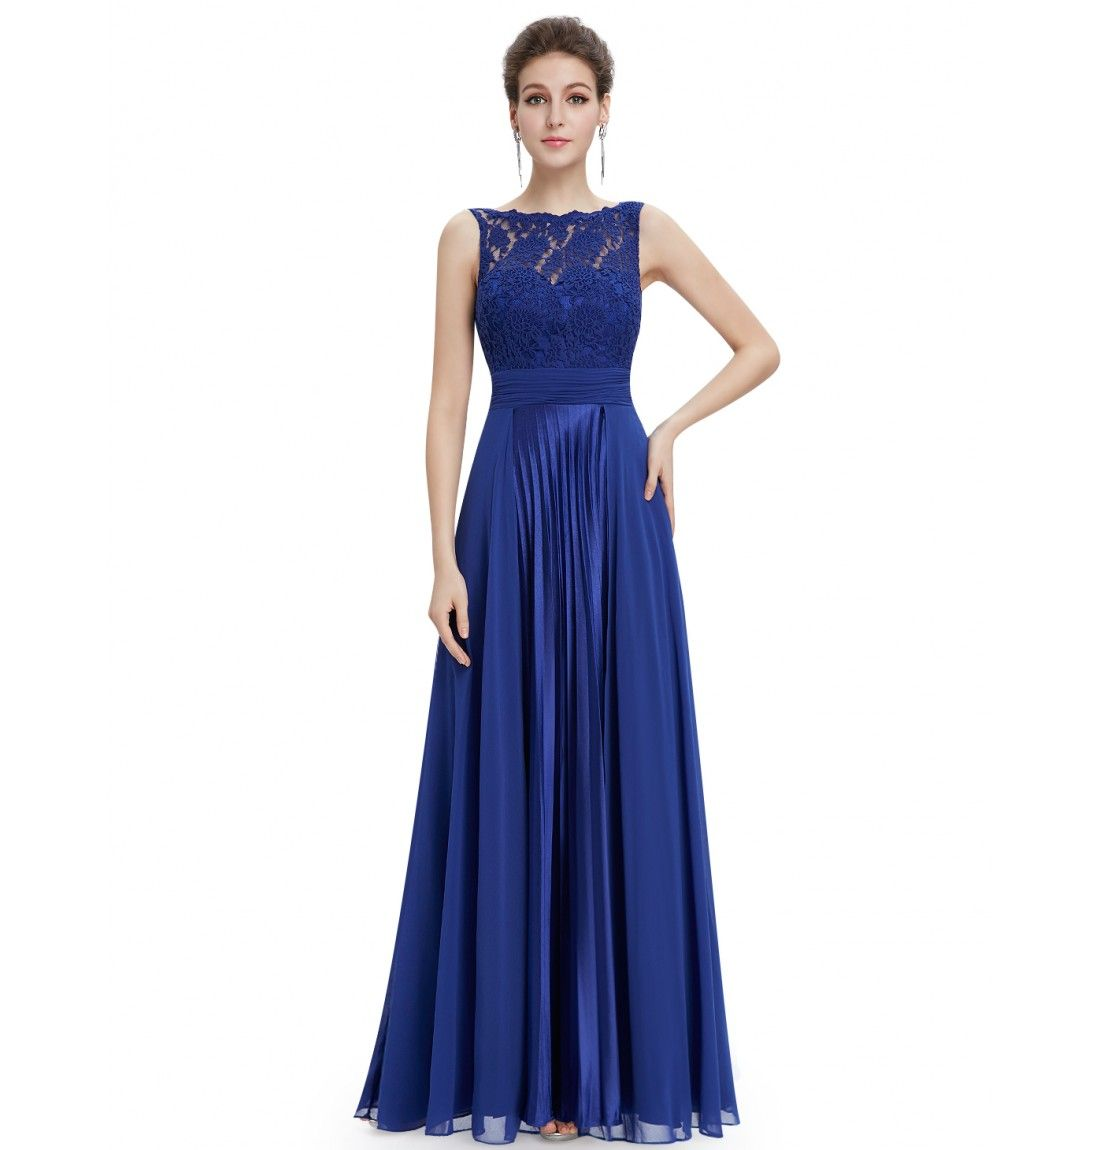 Elegantes Brautjungfer Abendkleid Blau Rundhals | prom dress ...